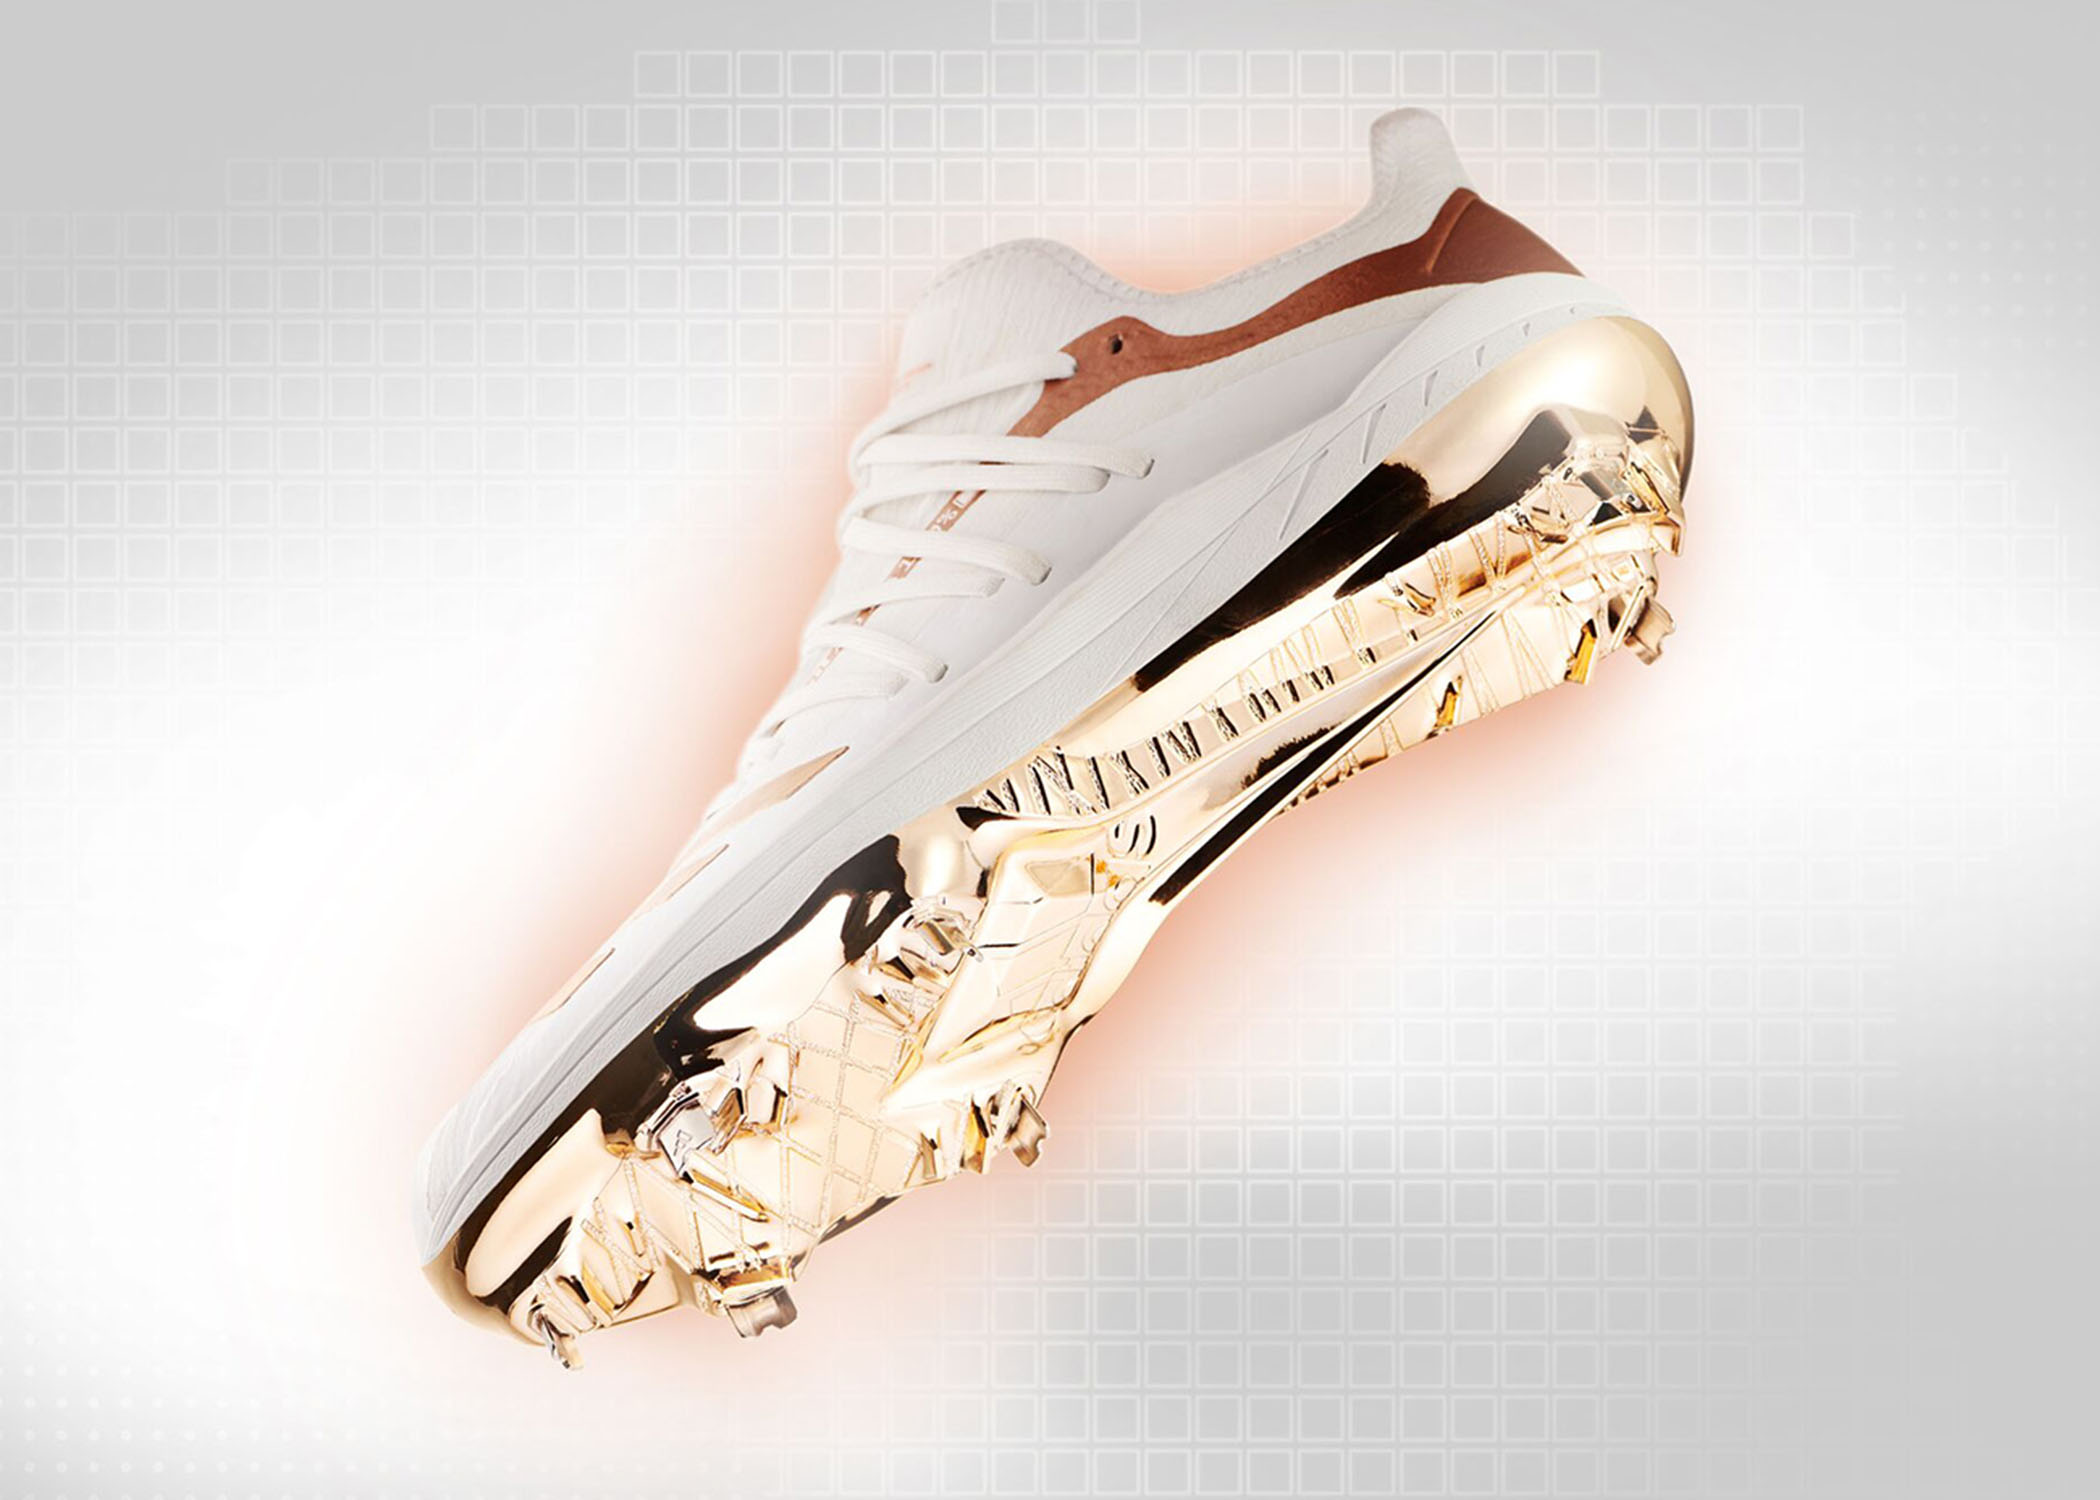 Adizero afterburner_1